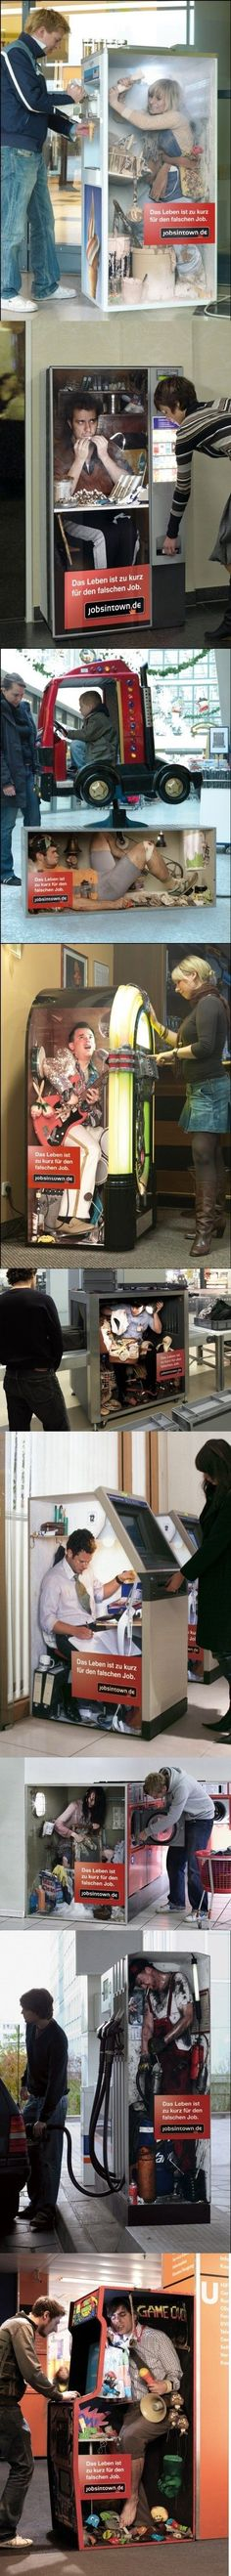 (14) Which are some of the funniest, most clever advertisements? - Quora - people captured in machines- well executed